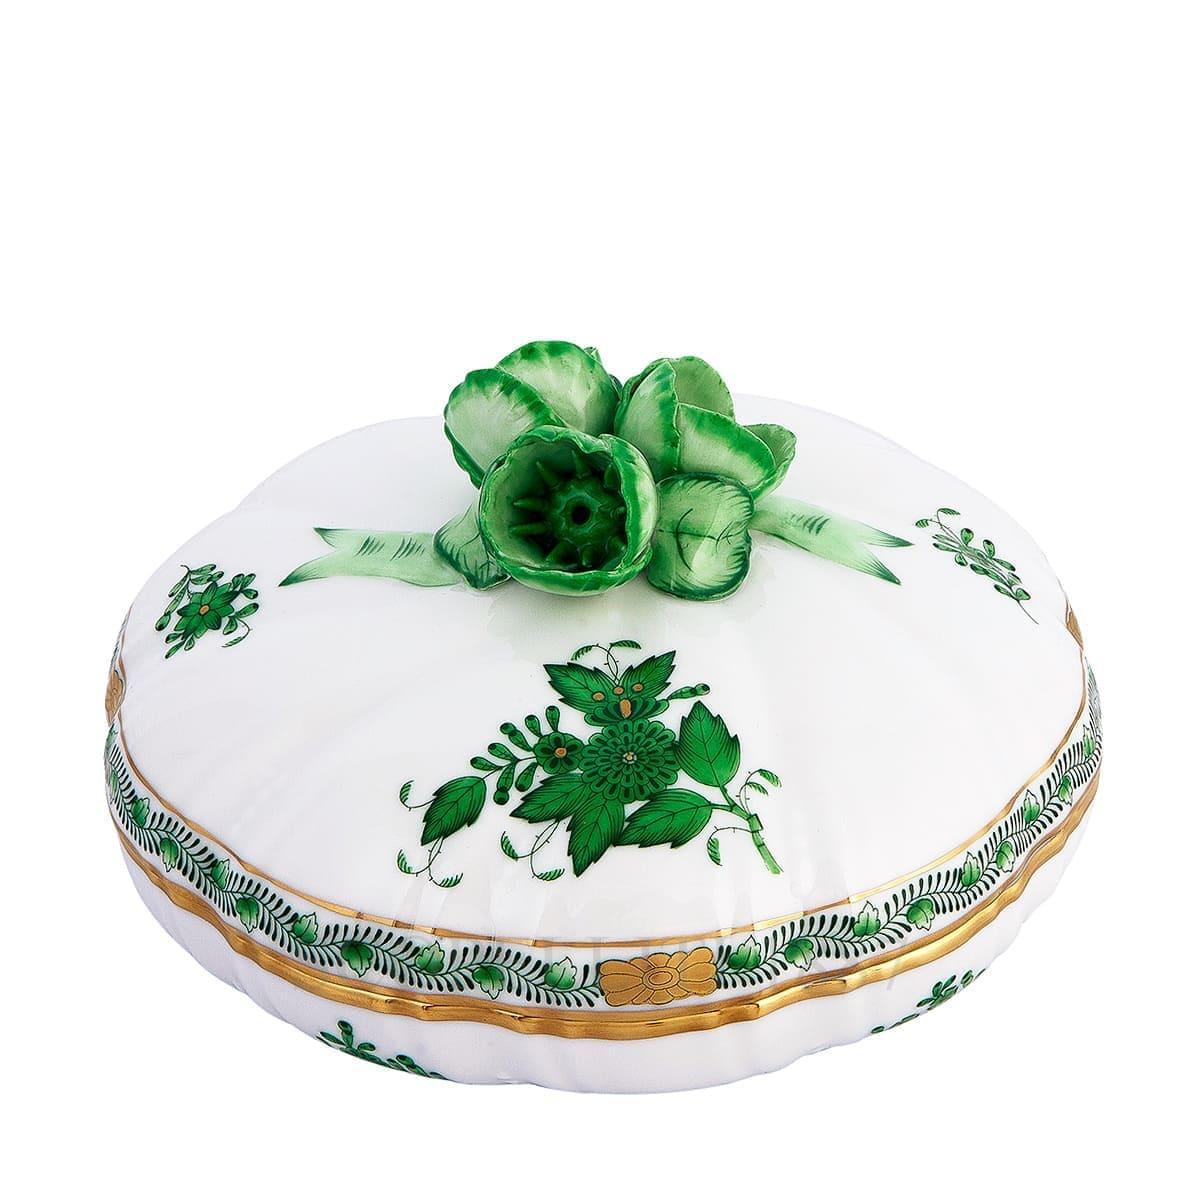 herend porcelain apponyi candy box green with rose